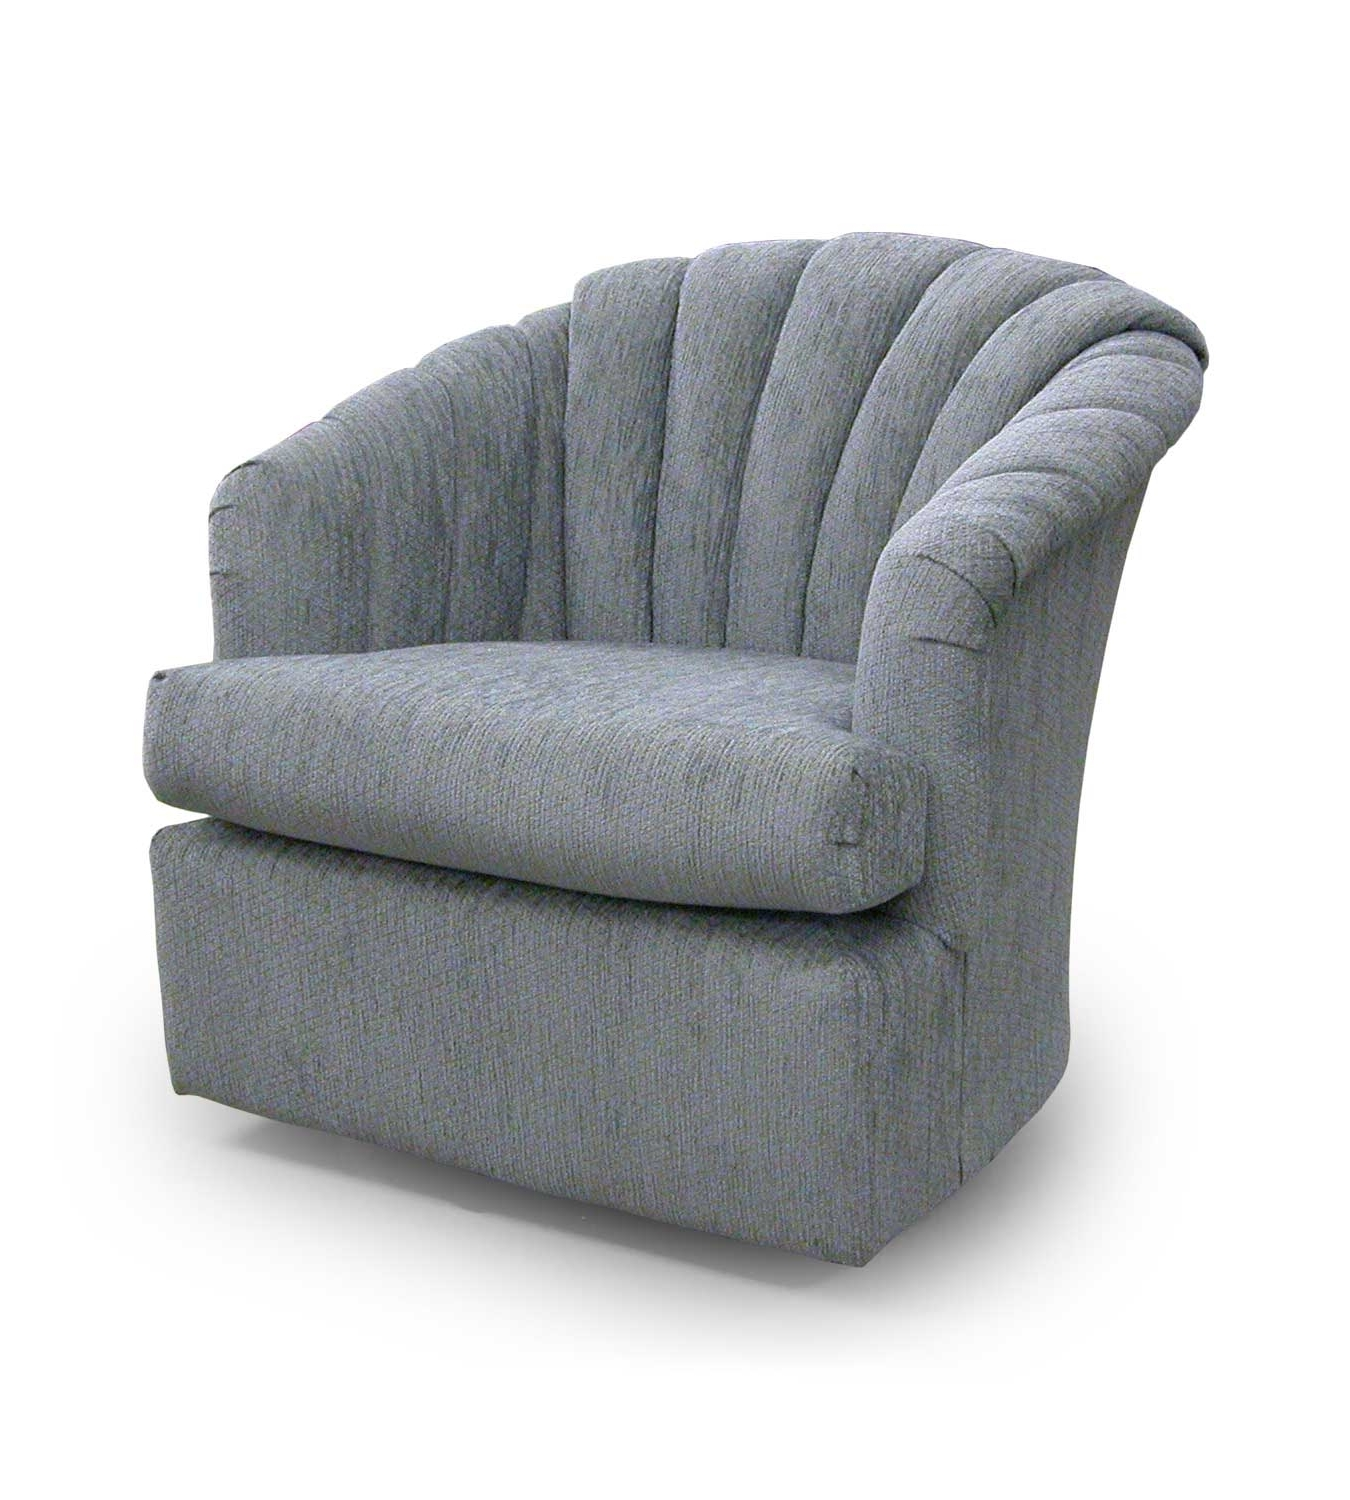 Current Furniture: Swivel Rocker Chair With Arm And Backseat In Swivel Rocking Chairs (View 6 of 15)